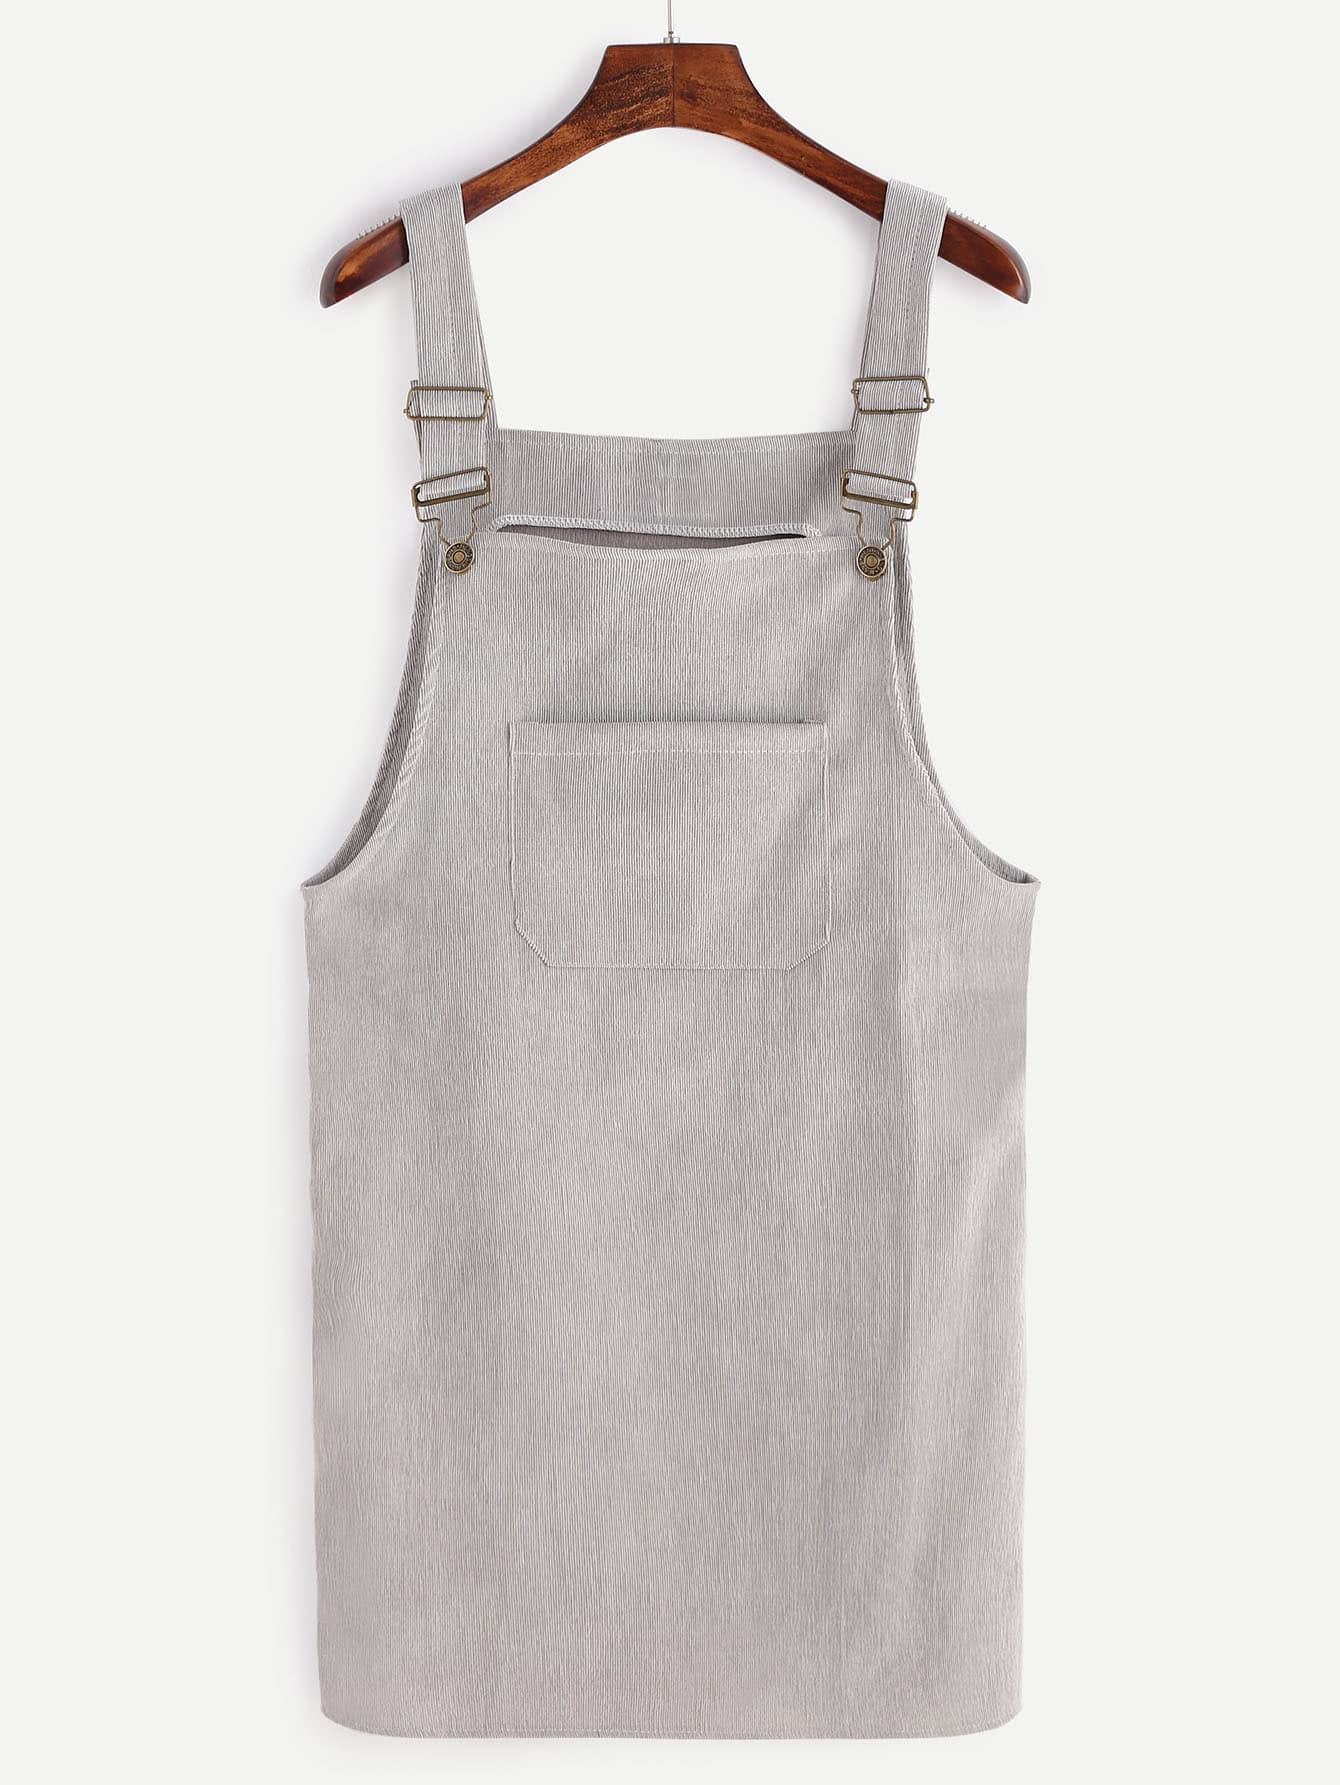 Grey Corduroy Overall Dress With Pocket